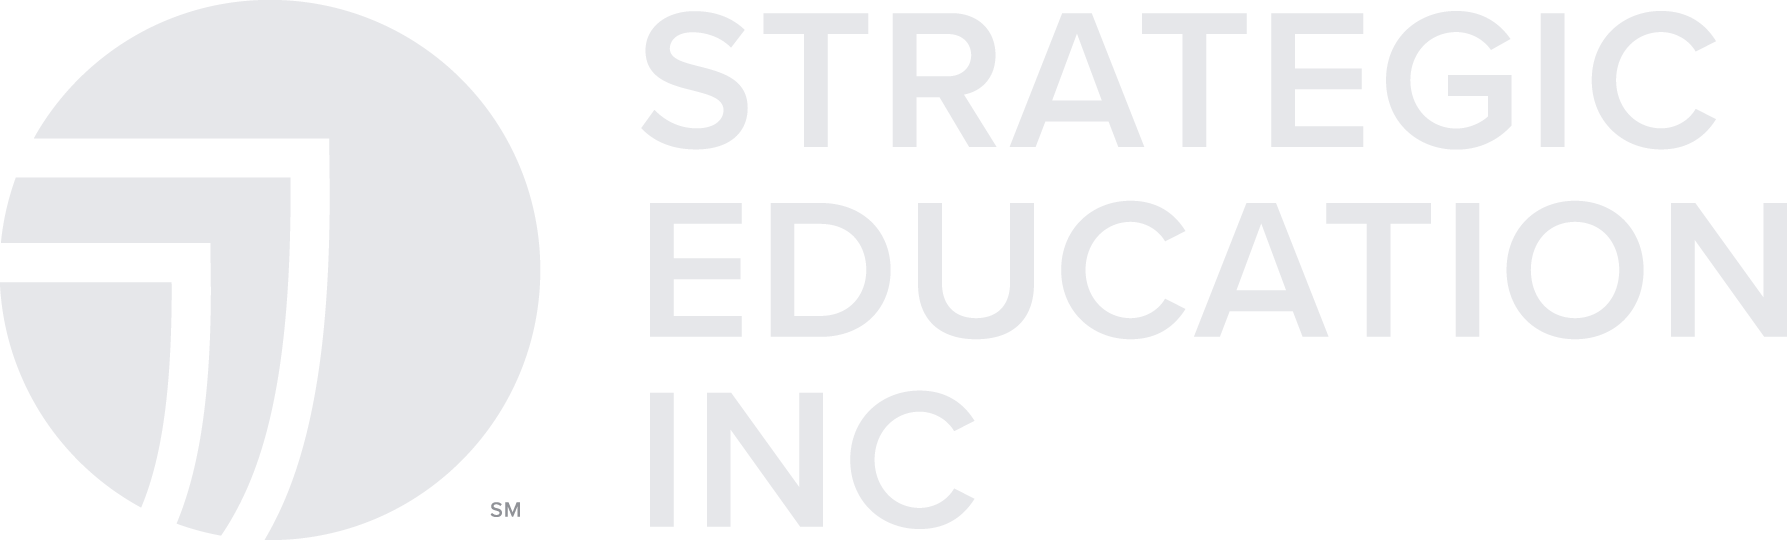 Strategic Education Inc